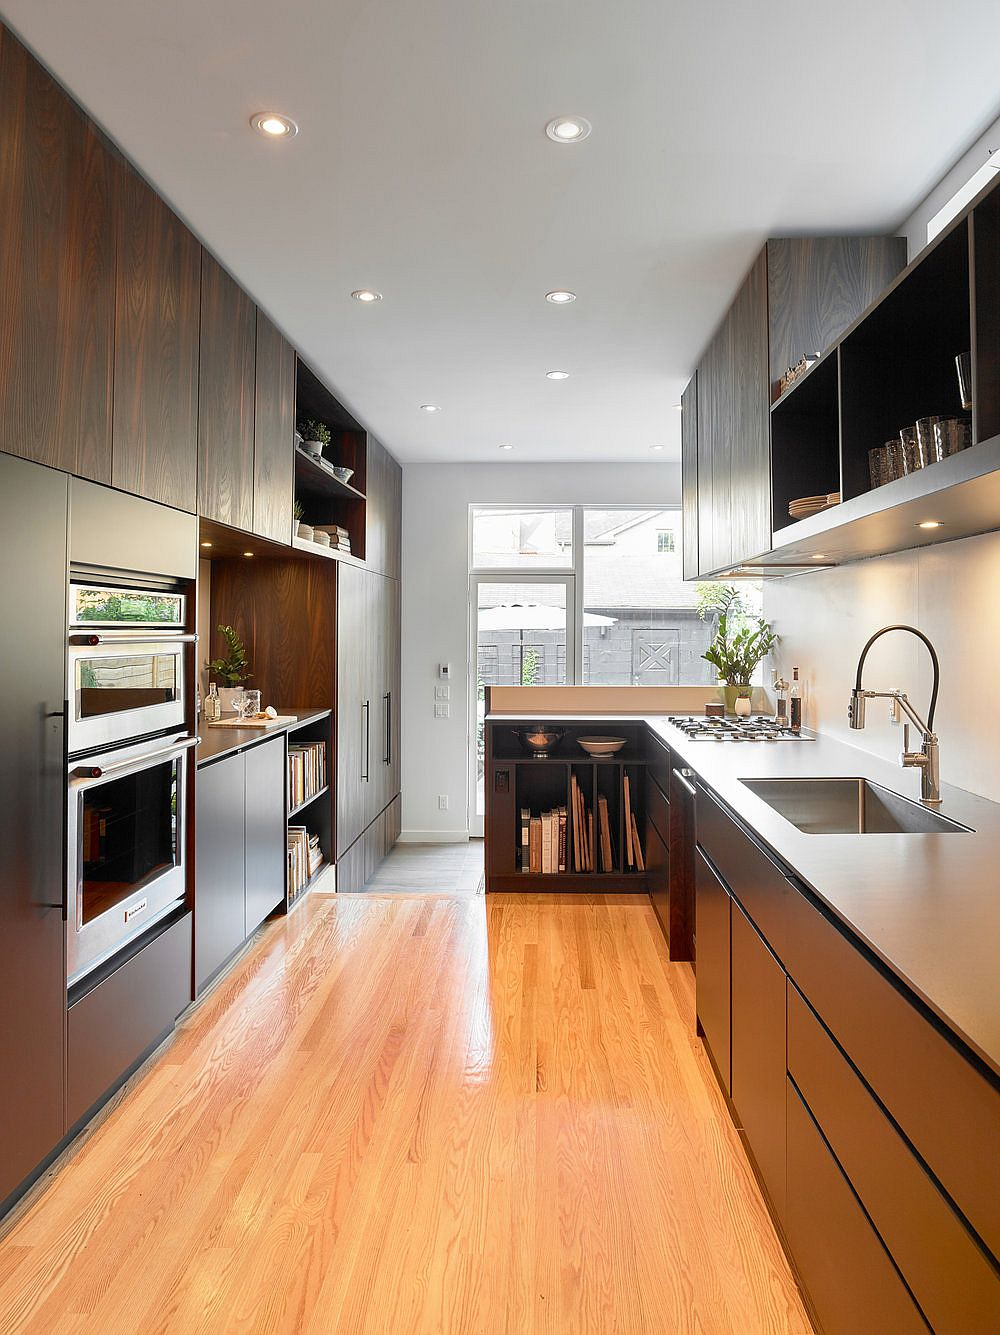 Wood-and-white-kitchen-of-the-Toronto-home-with-a-modern-traditional-style-27547